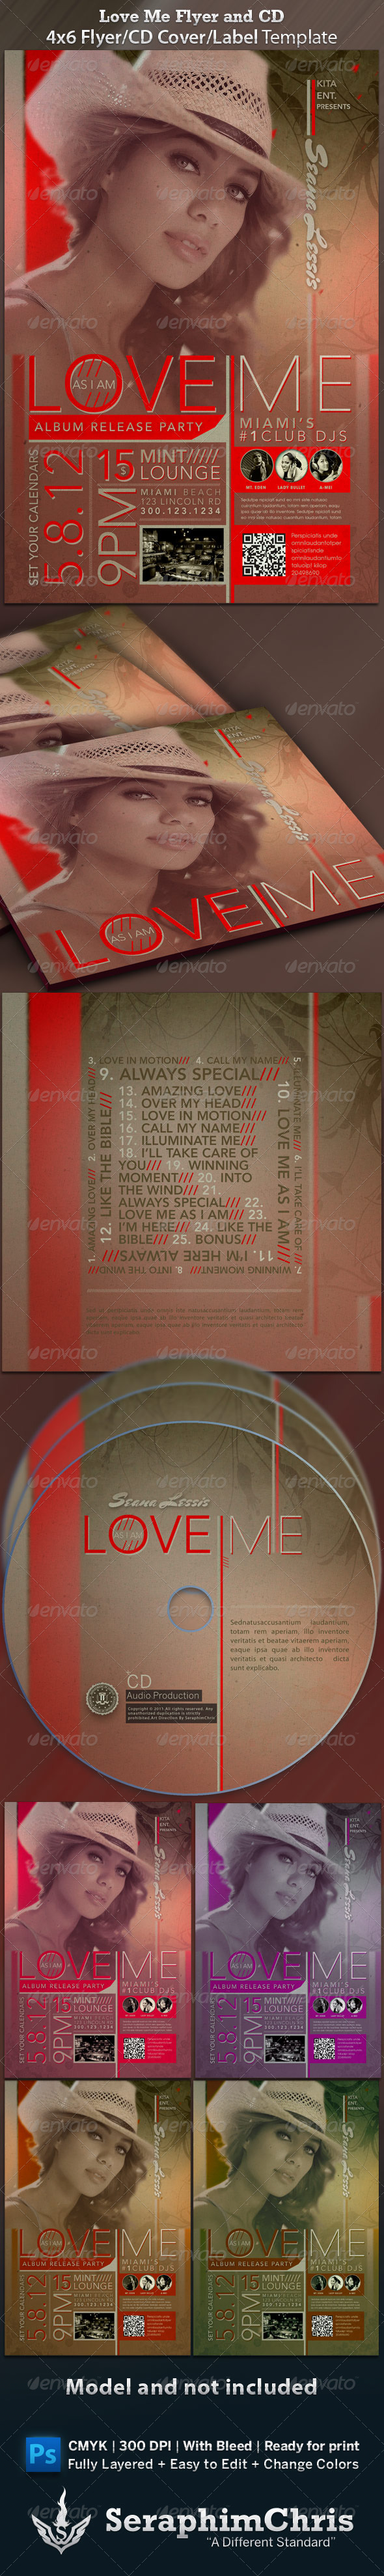 GraphicRiver Love Me CD Cover and Flyer Template 1545746